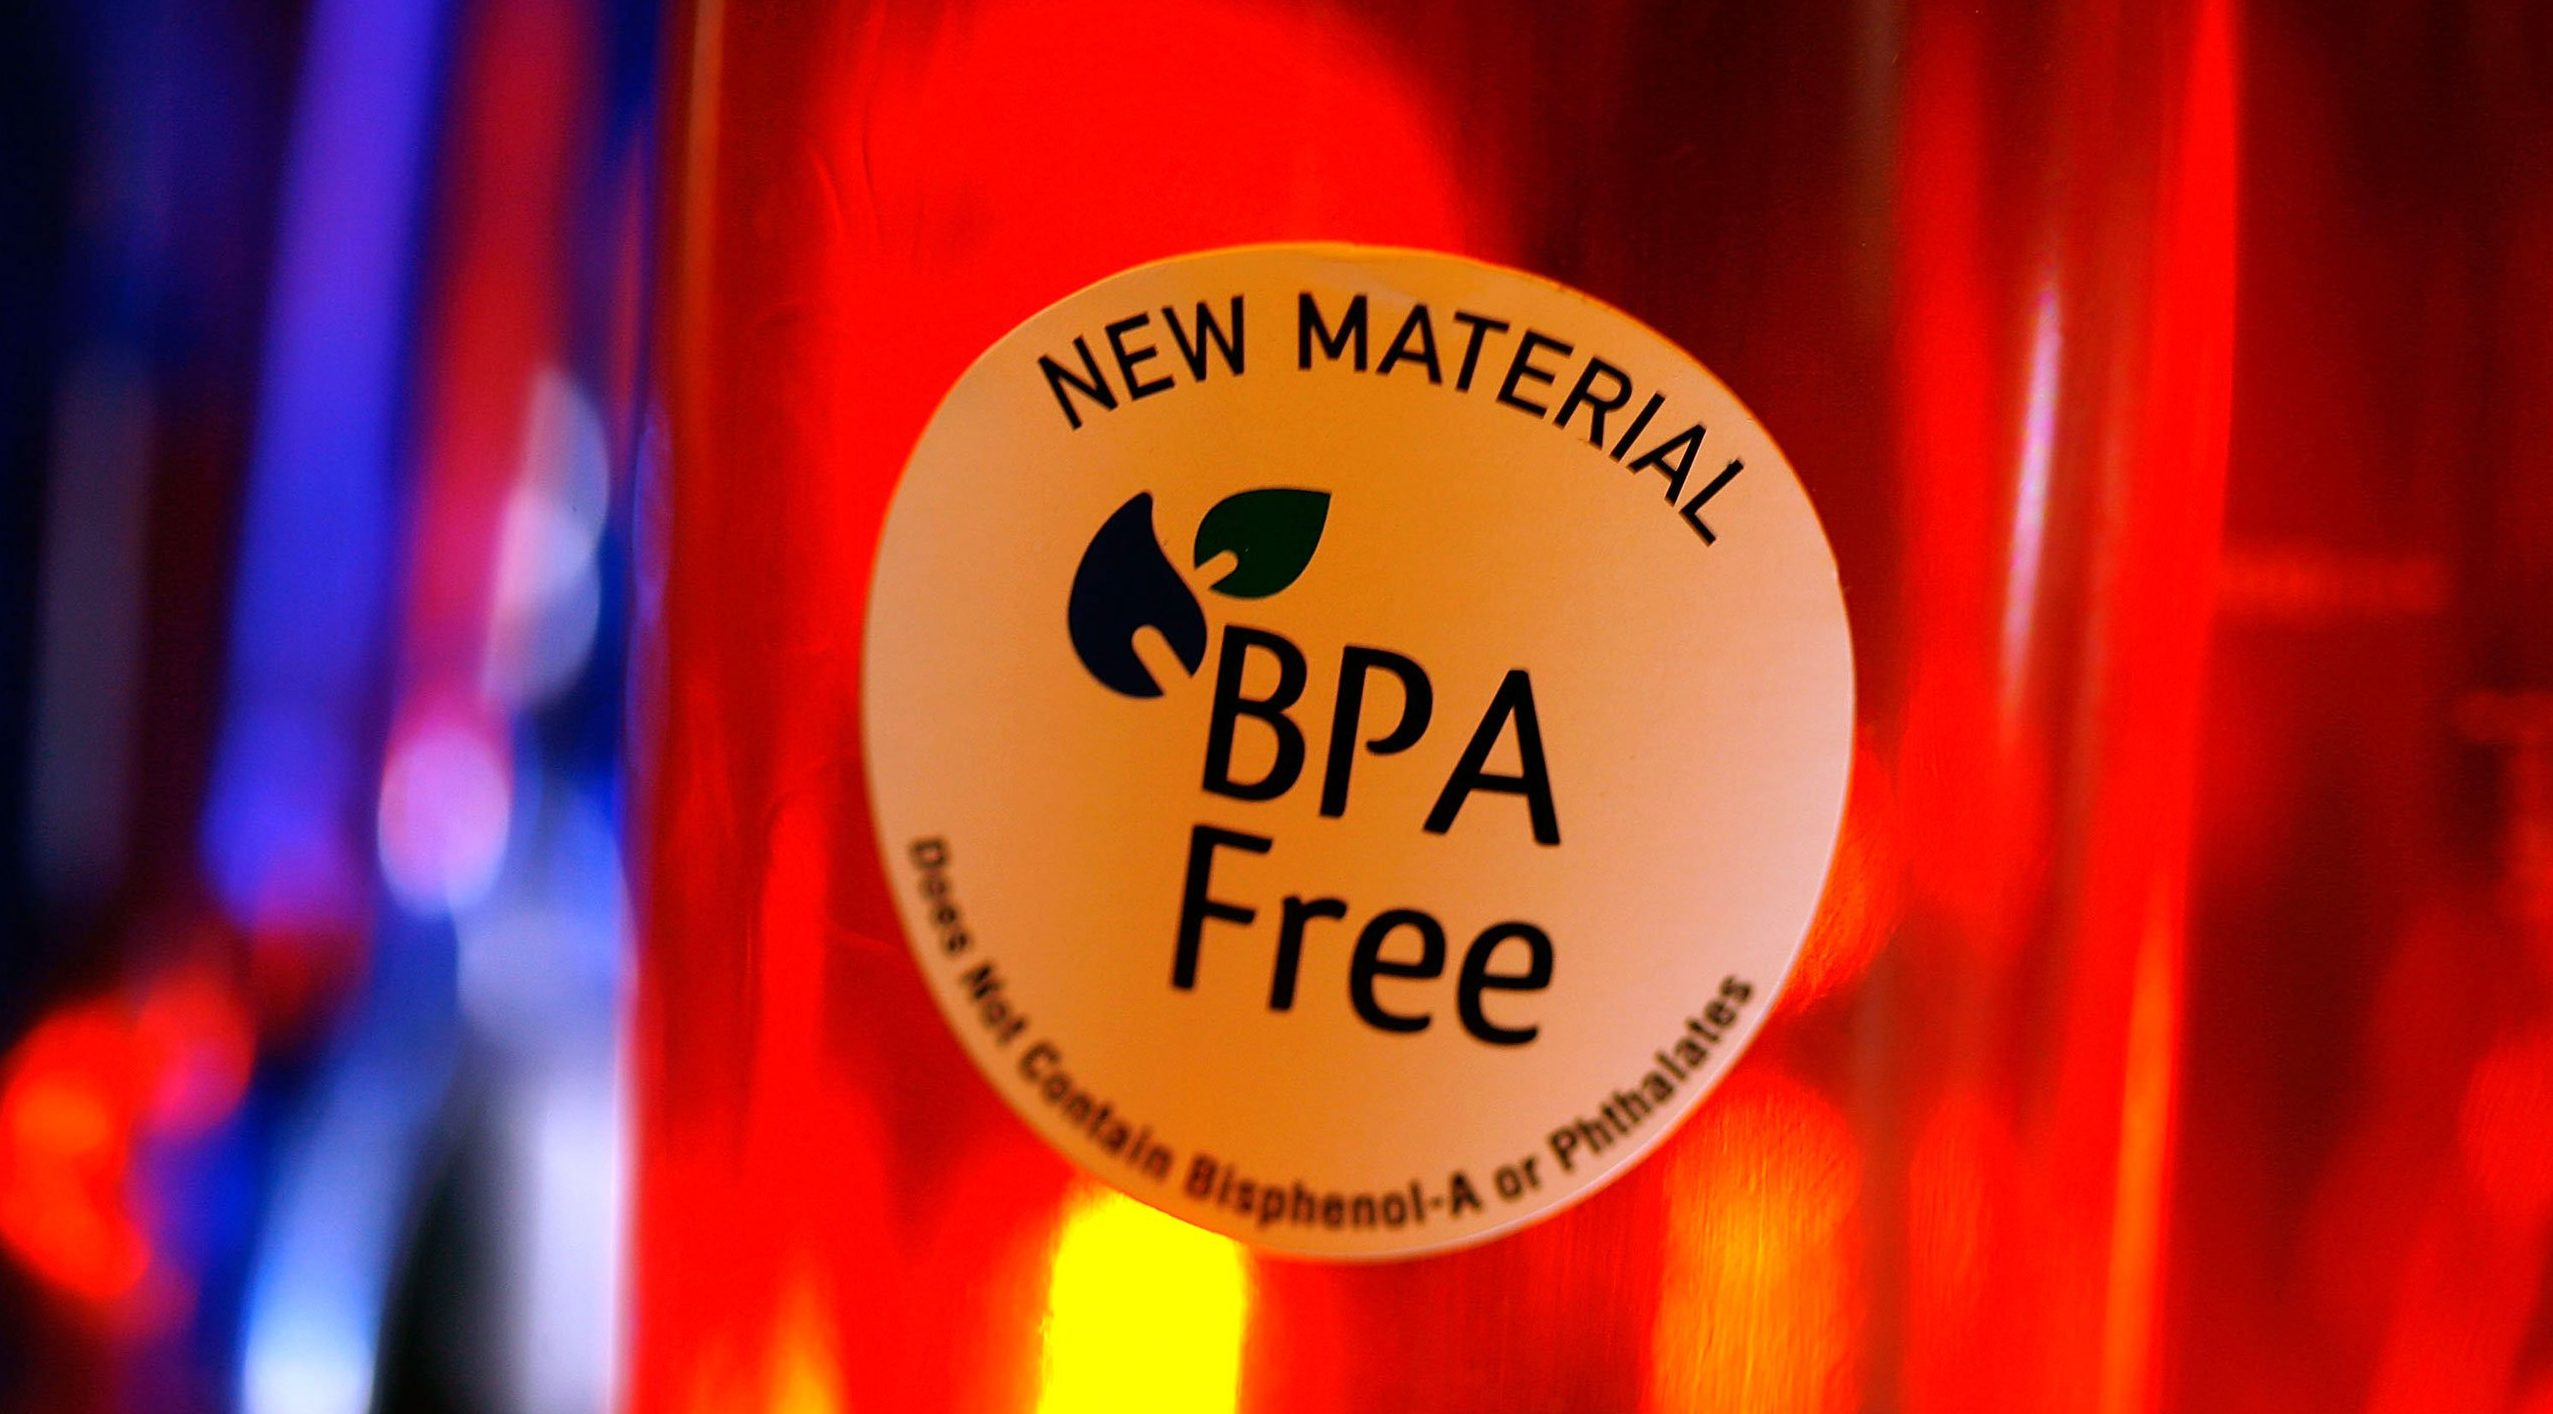 ARCADIA, CA - APRIL 16:  Camelback brand water bottles that are free of the controversial carbonate plastic bisphenol-a (BPA), one of the most widely used synthetic chemicals in industry, hang on display at an outdoor supply store on April 16, 2008 in Arcadia, California. National Institutes of Health?s National Toxicology Program has concluded that the estrogen-like chemical in the plastic, which is also used in many baby products, beverage and food containers, and as linings in food cans, could be harmful to the development of children's brains and reproductive organs, and Canada is reportedly about to declare health finding against BPA. Some makers of such bottles have recognized the concern, including Nalgene and Camelback, have begun producing BPA-free alternative containers.   (Photo by David McNew/Getty Images)